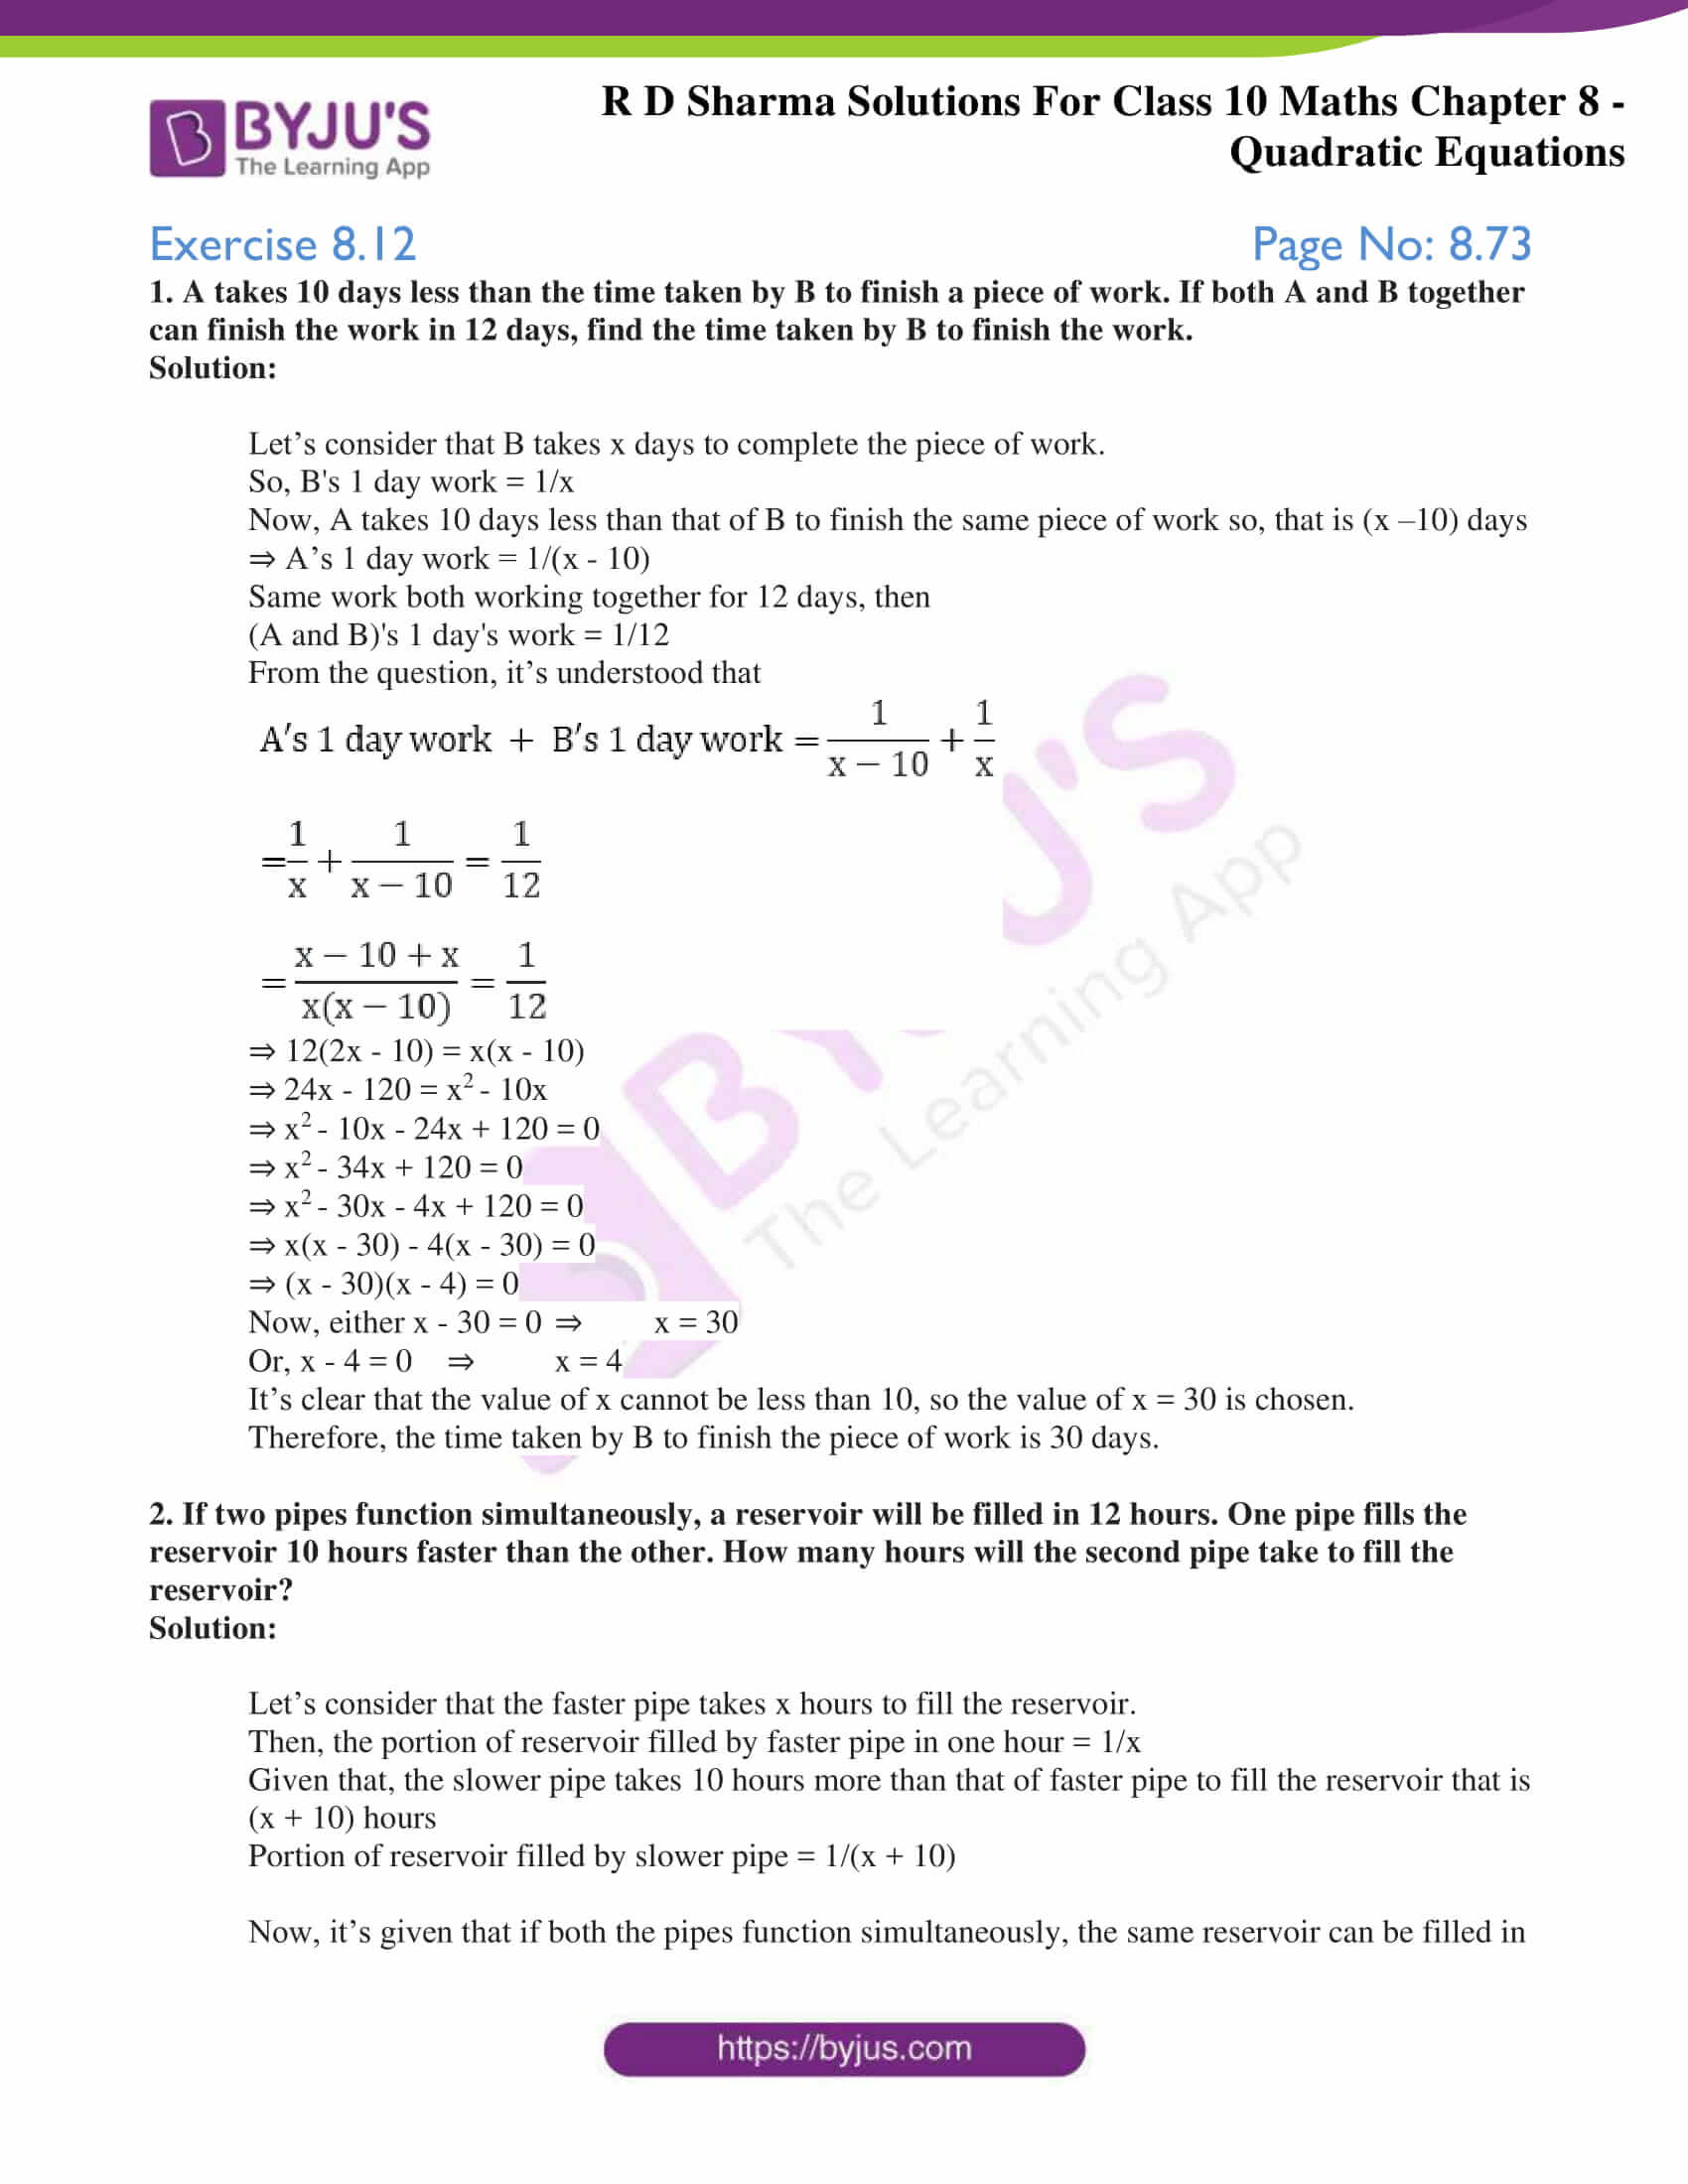 RD Sharma Solutions for Class 10 Chapter 8 Quadratic Equations Exercise 8.12 70